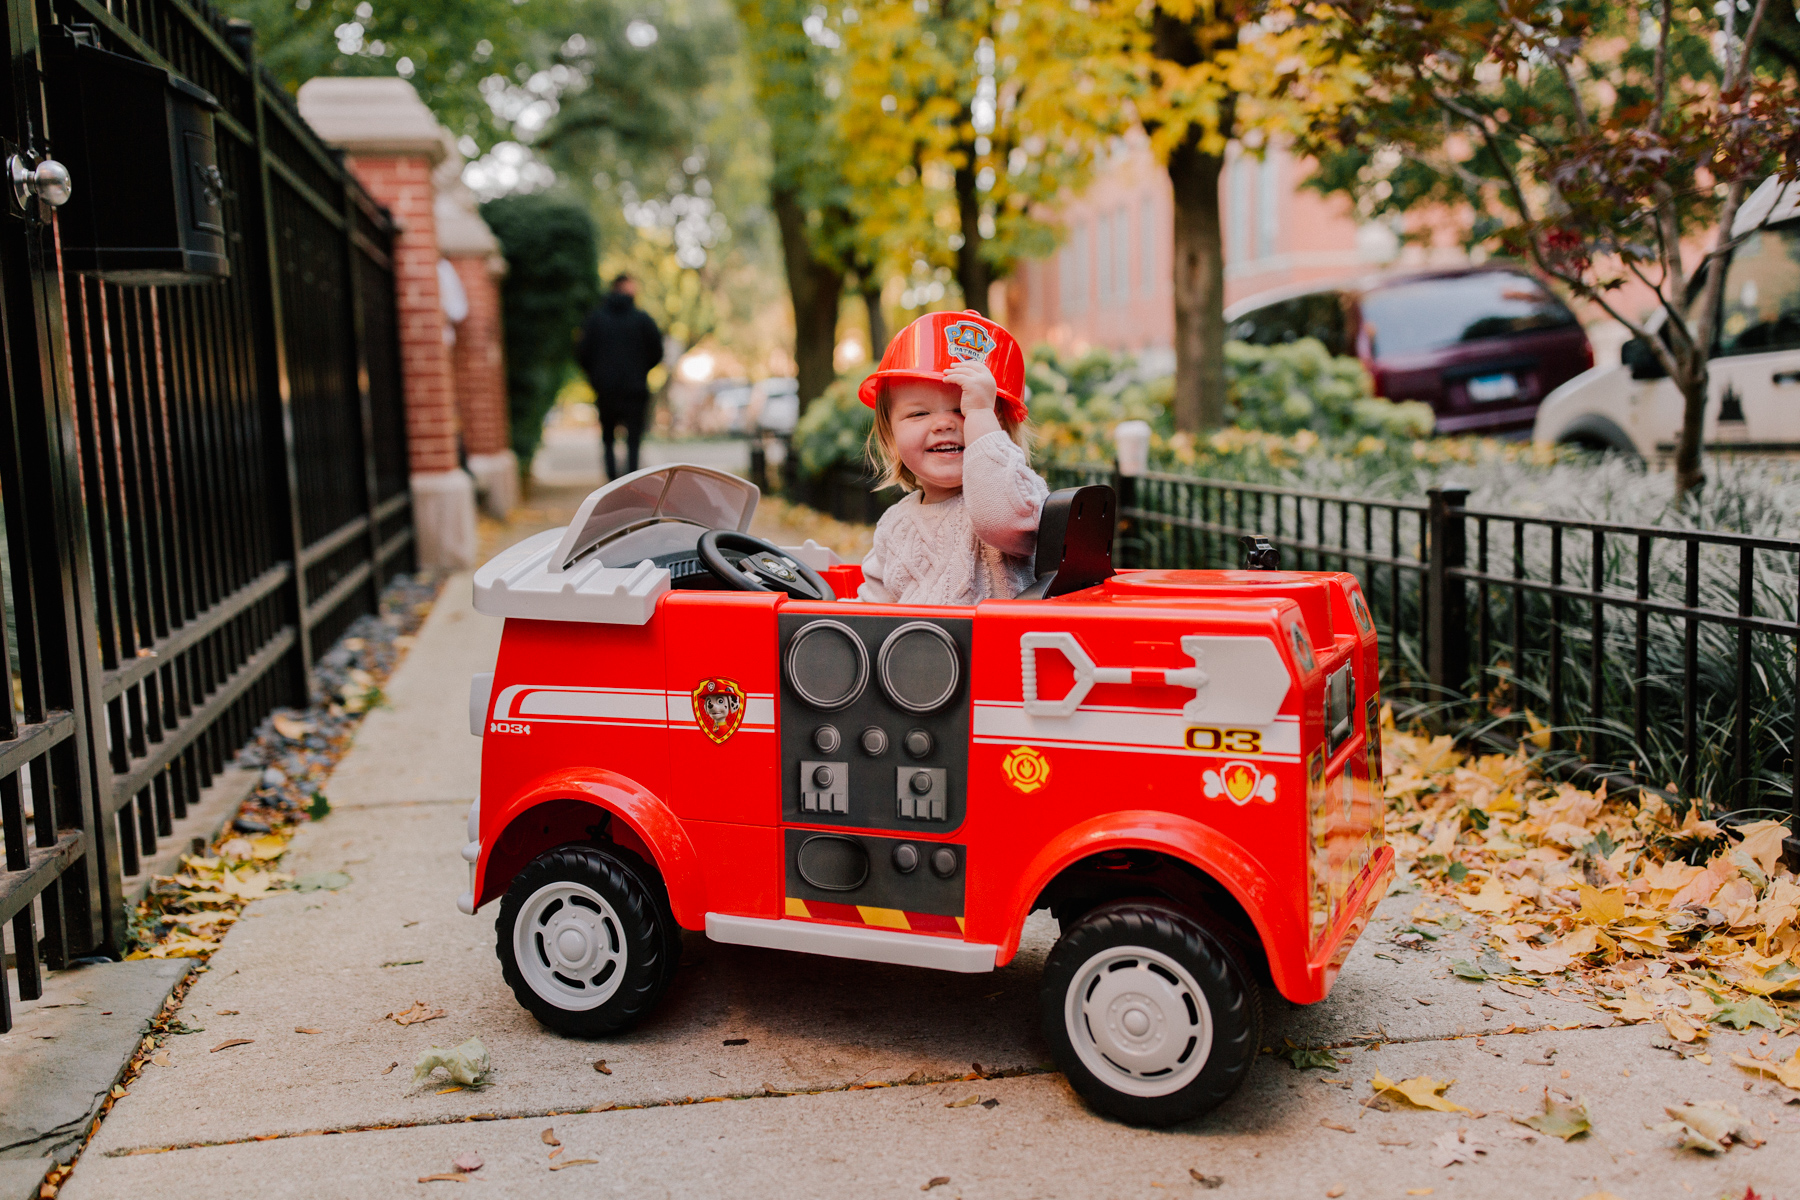 Paw Patrol Fire Truck 6 Volt powered Ride On Toy by Kid Trax, Marshall rescue - Emma Larkin